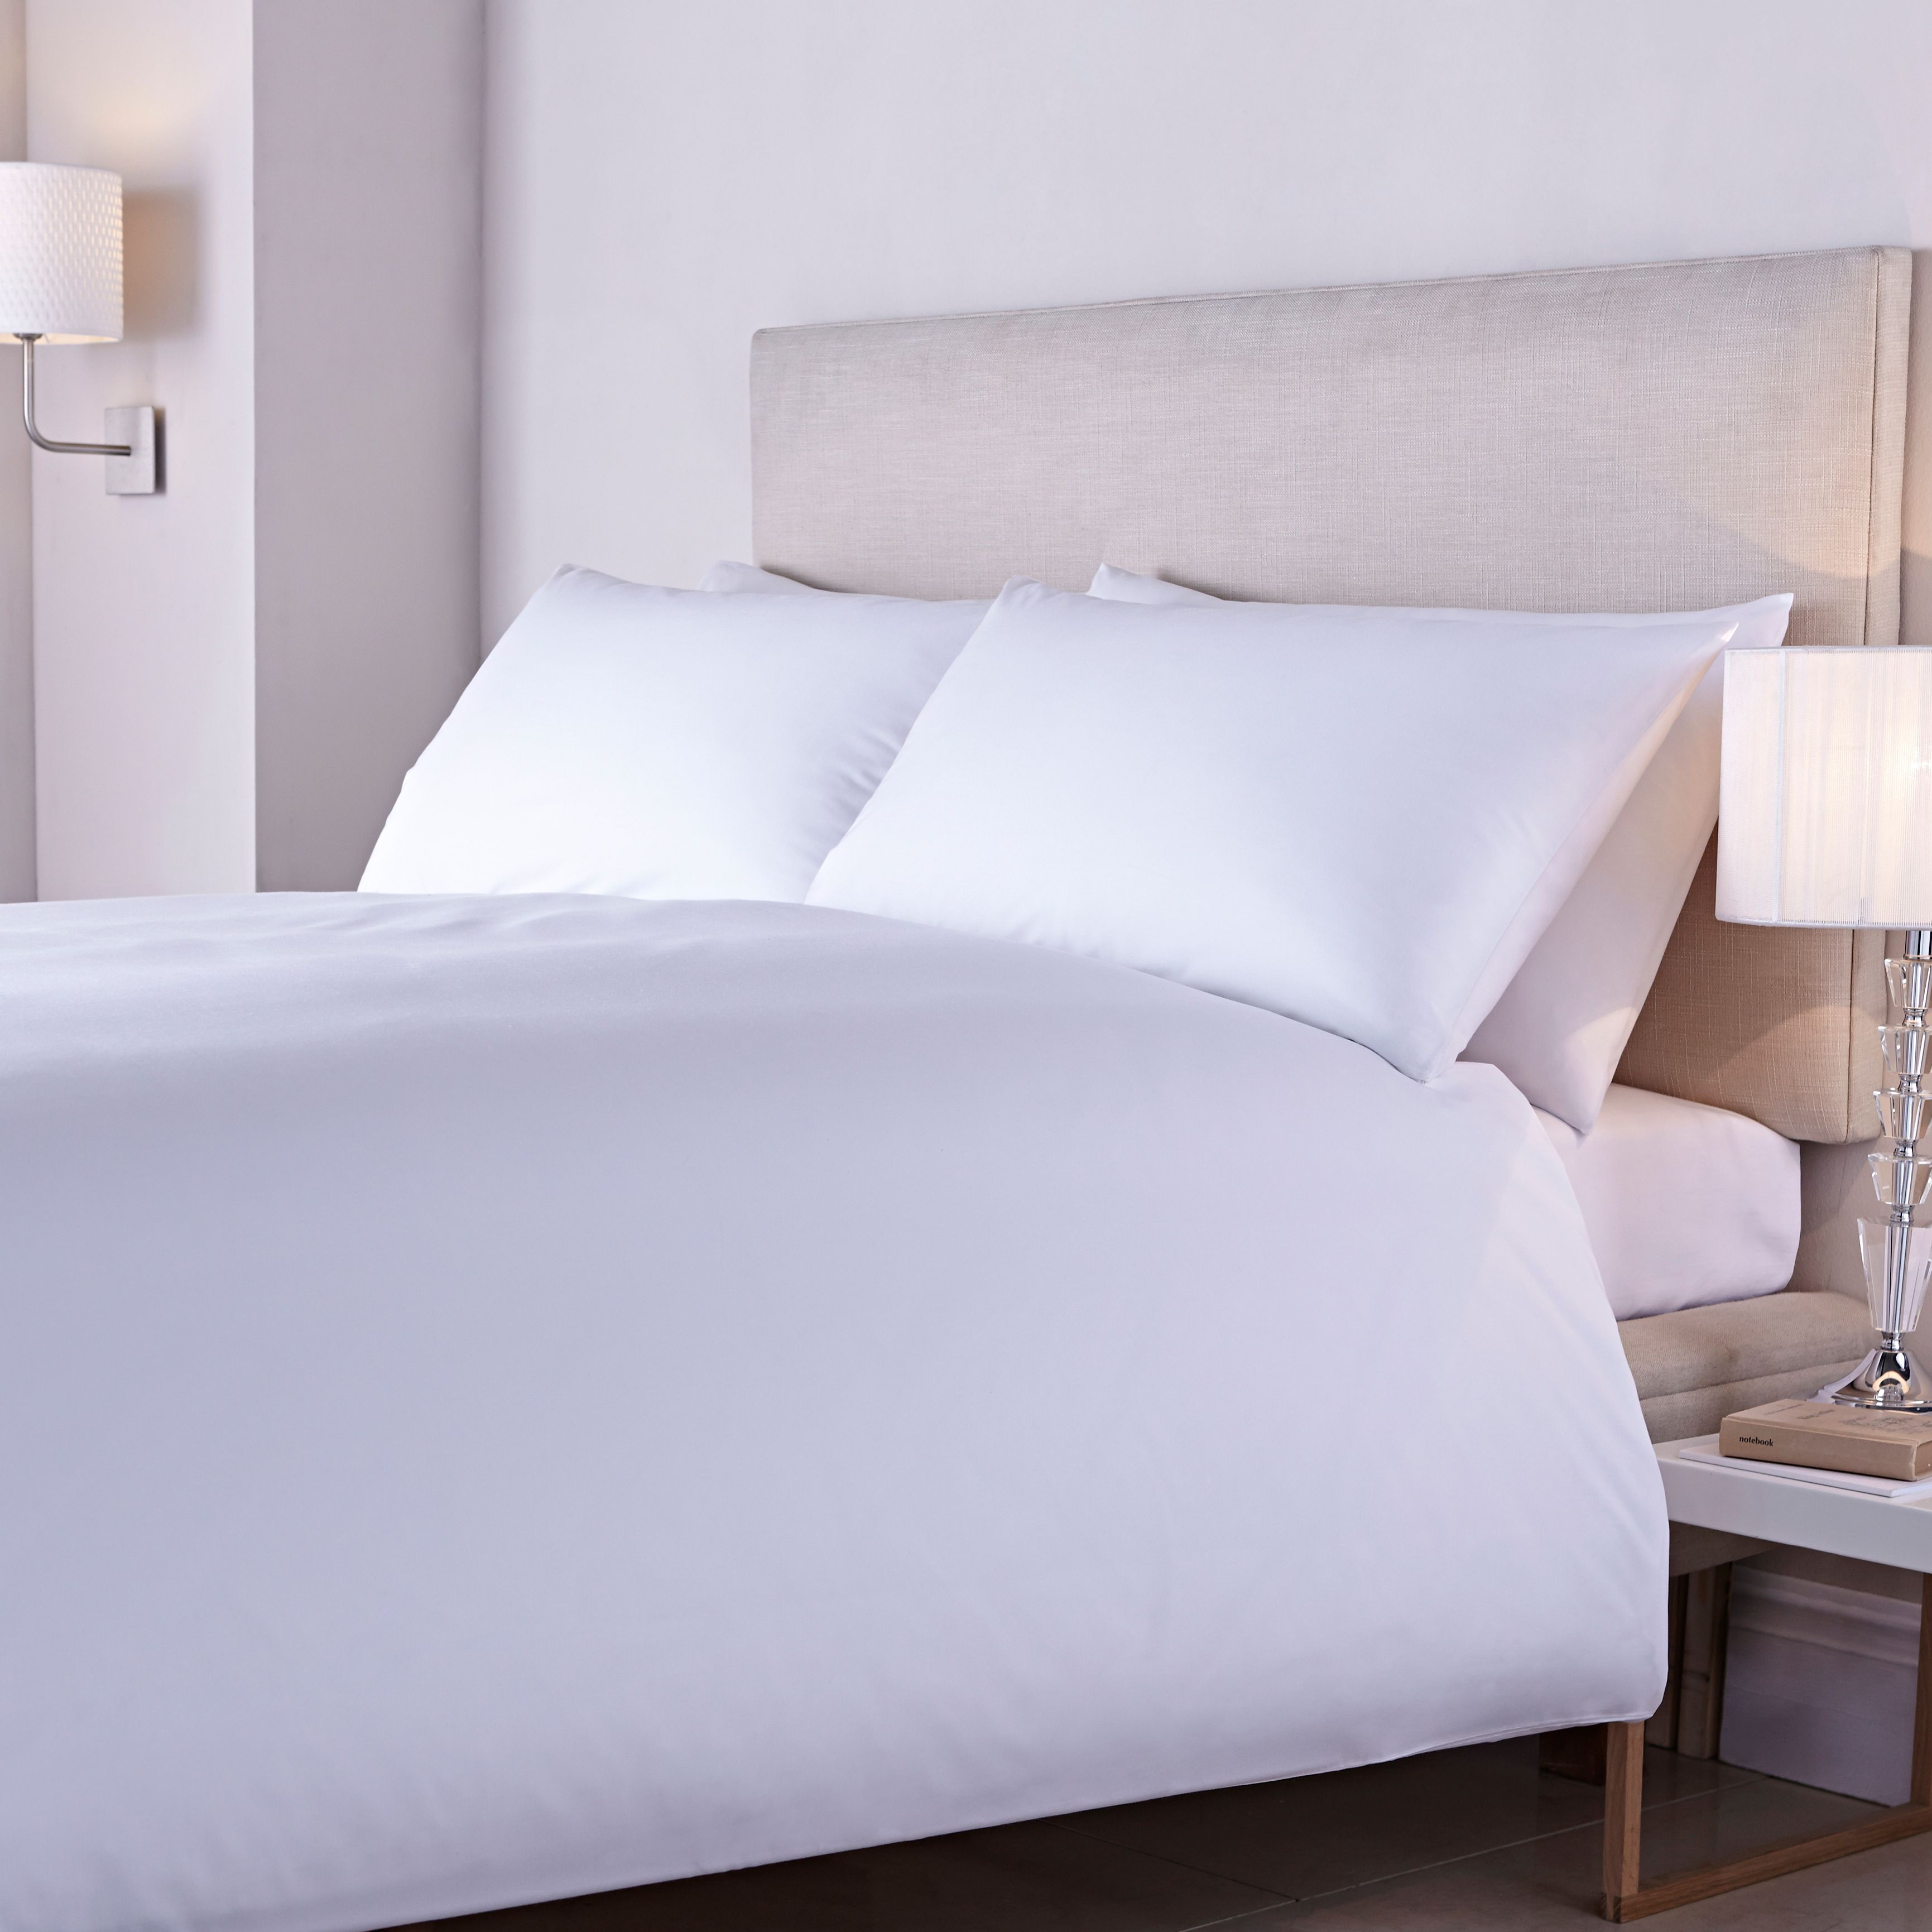 Image of Luxury Hotel Collection 400tc crisp percale duvet cover set double